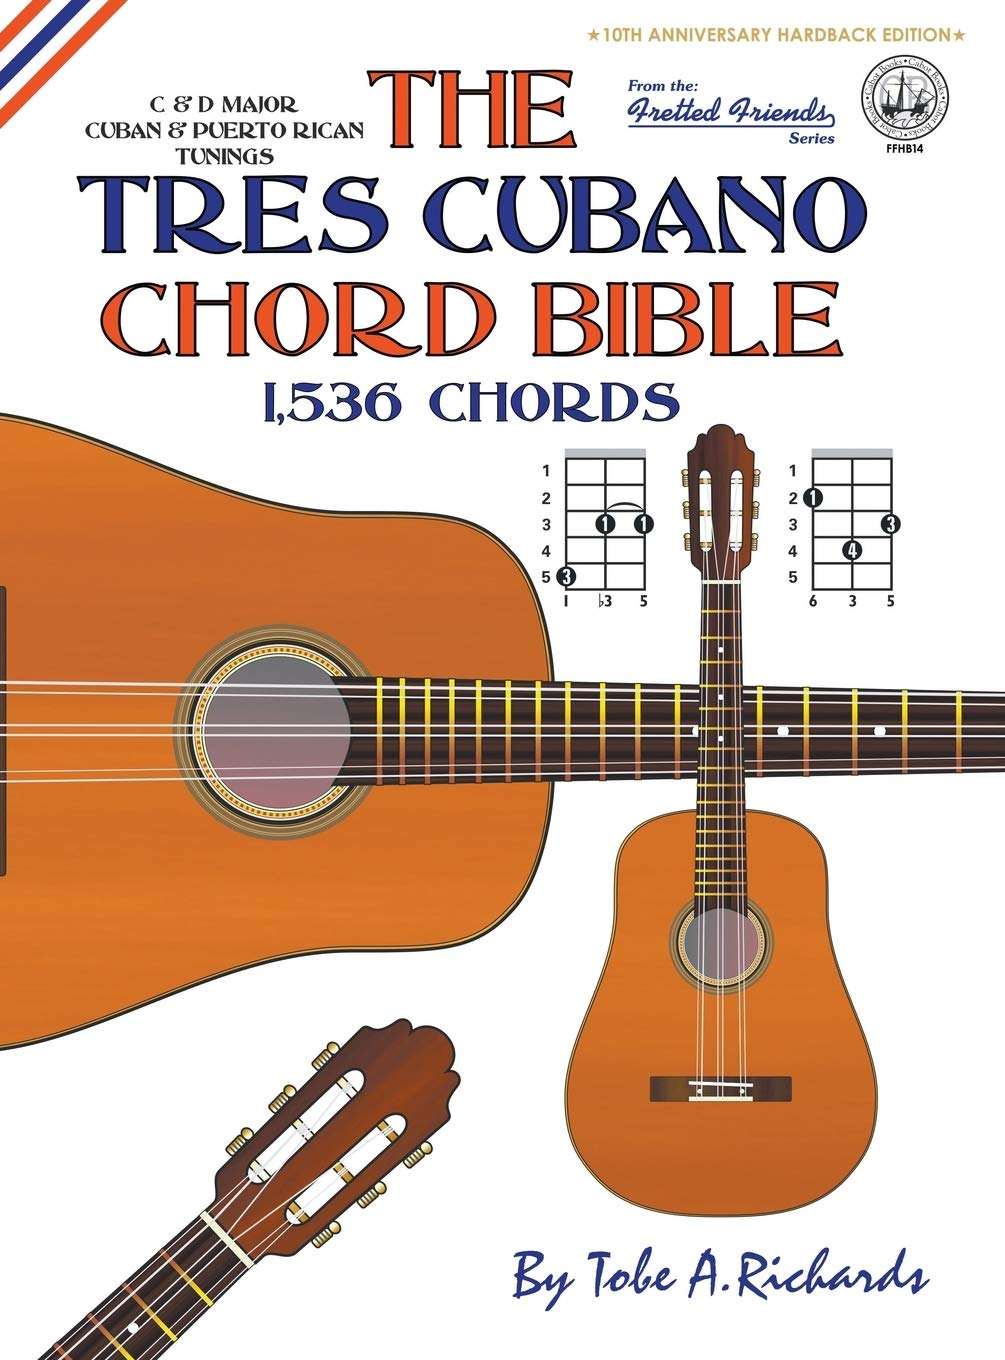 The Tres Cubano Chord Bible: Cuban and Puerto Rican Tunings 1,536 ...